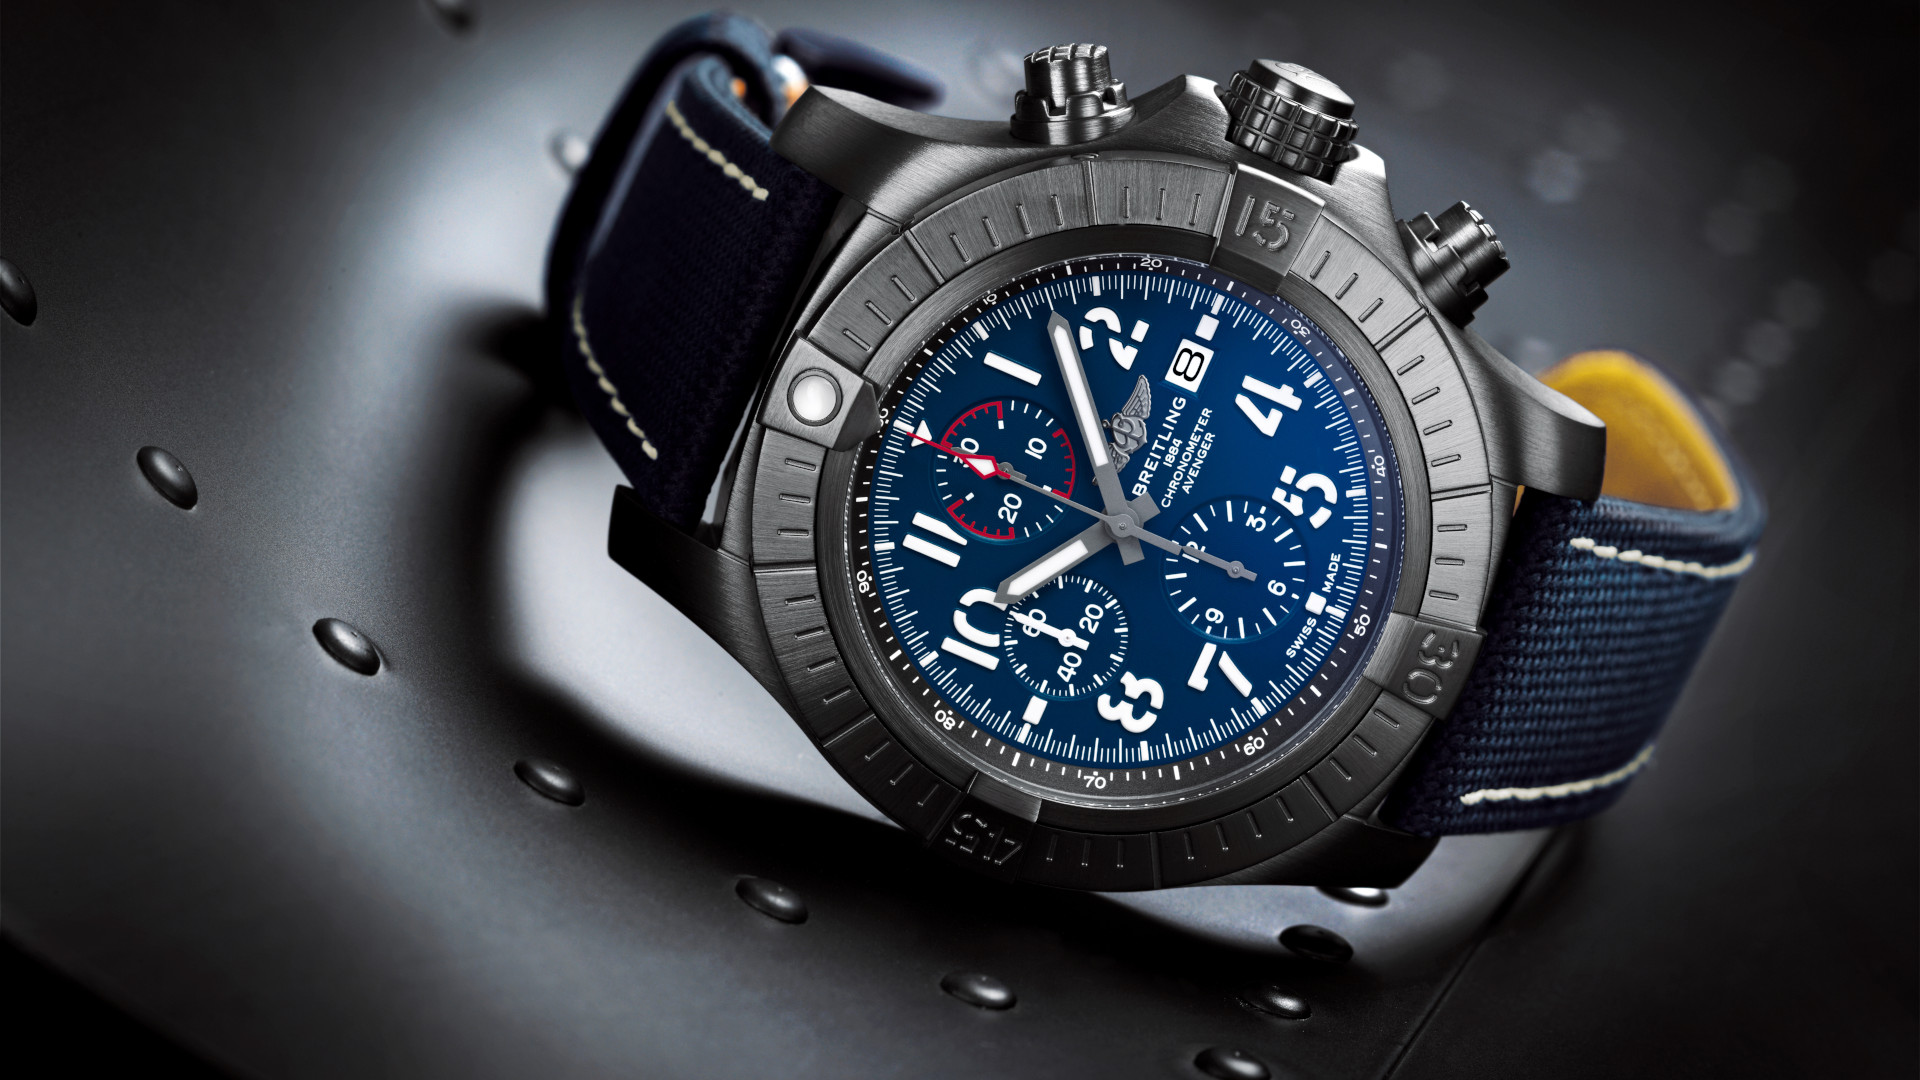 The new Breitling Avenger collection is their take on a modern pilot's watch made to push aviation limits